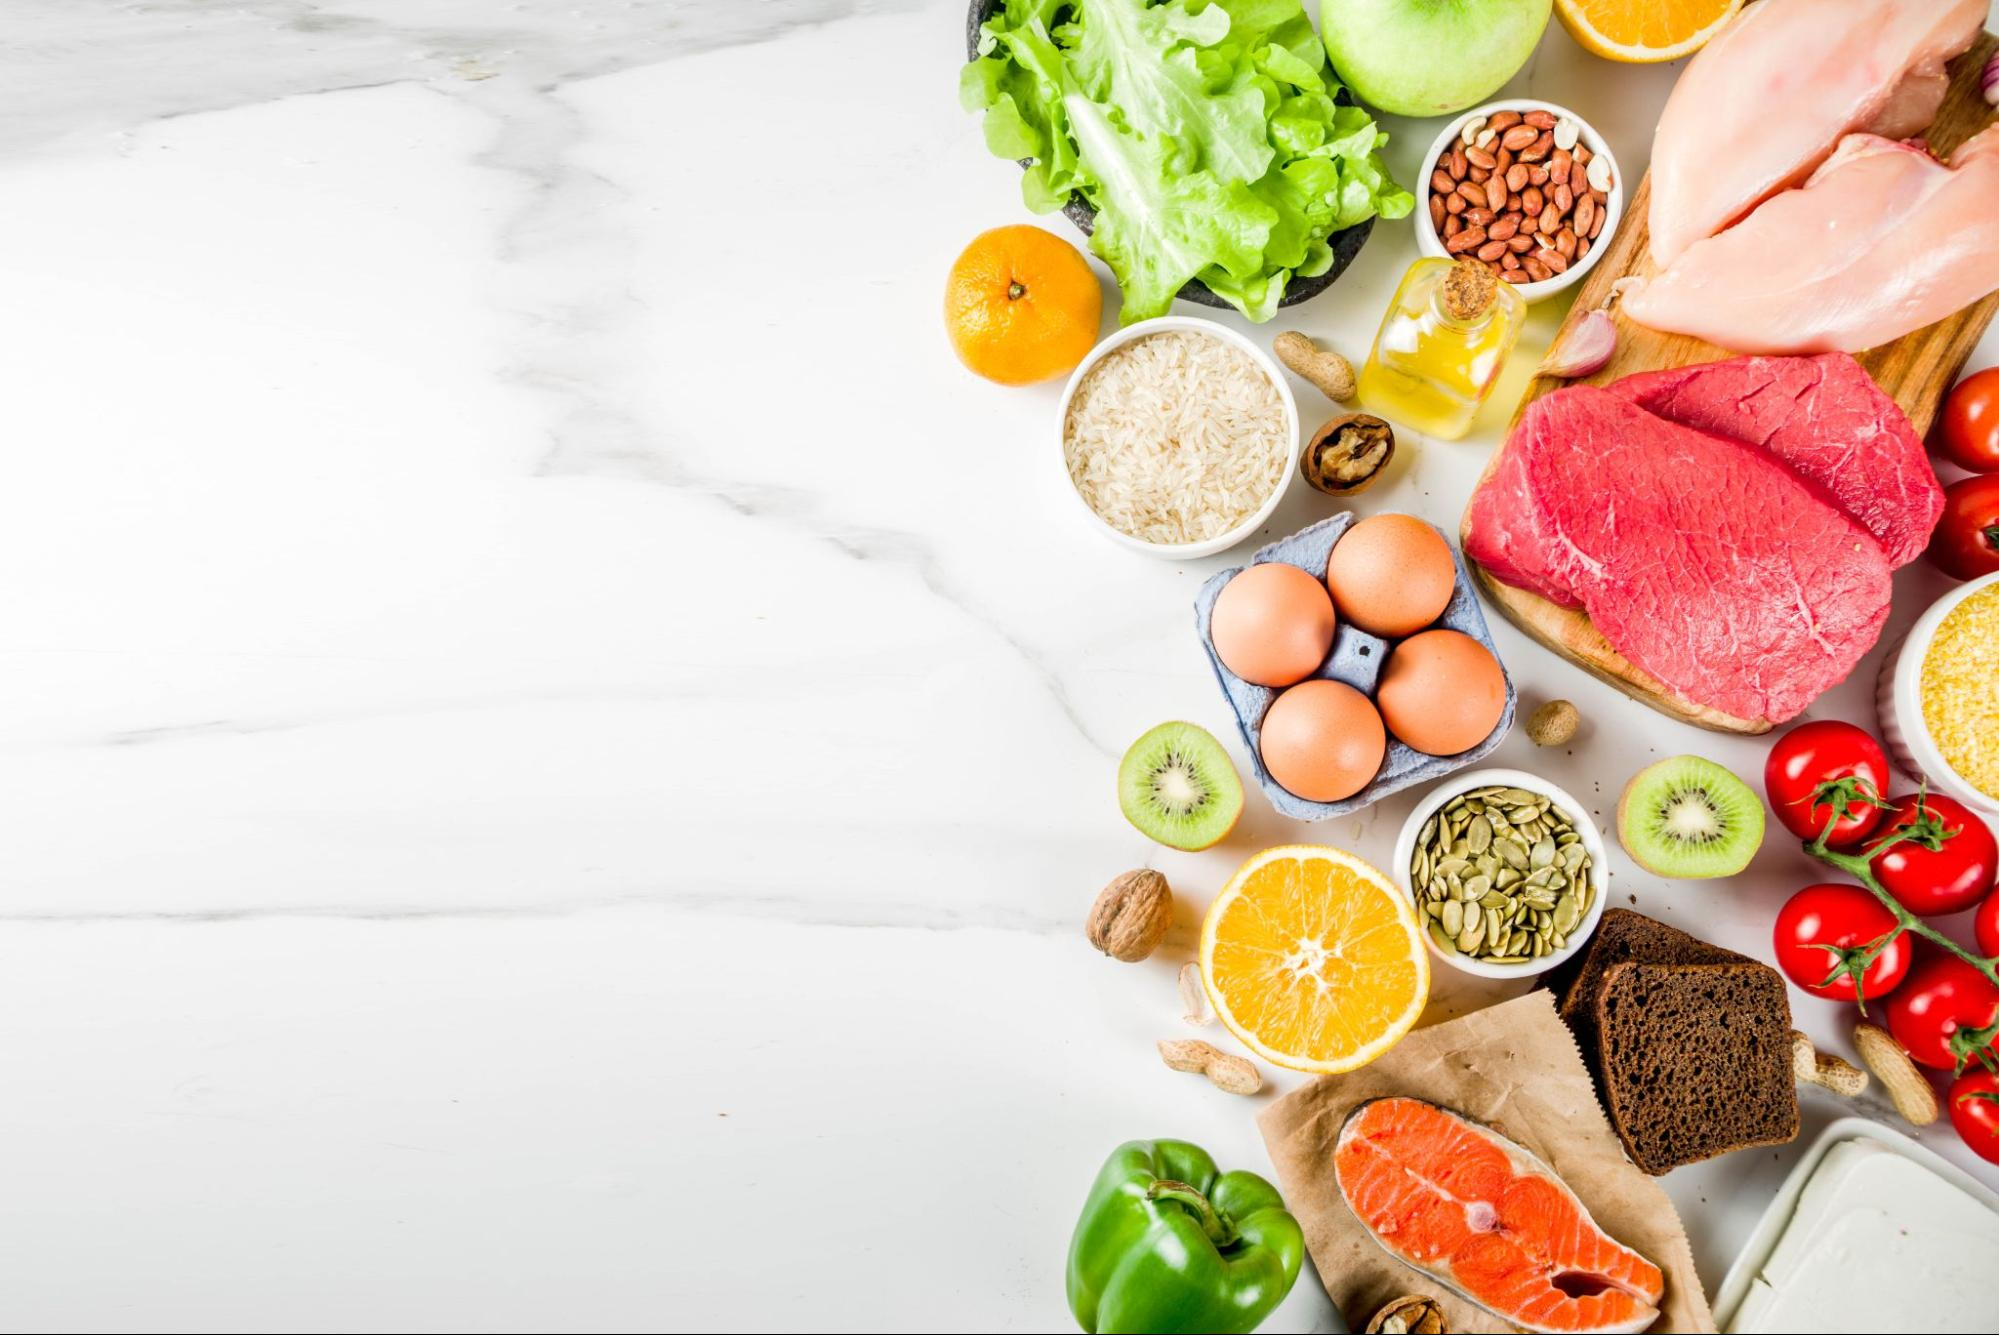 Variety of fresh fruits, vegetables, and meat on a white surface